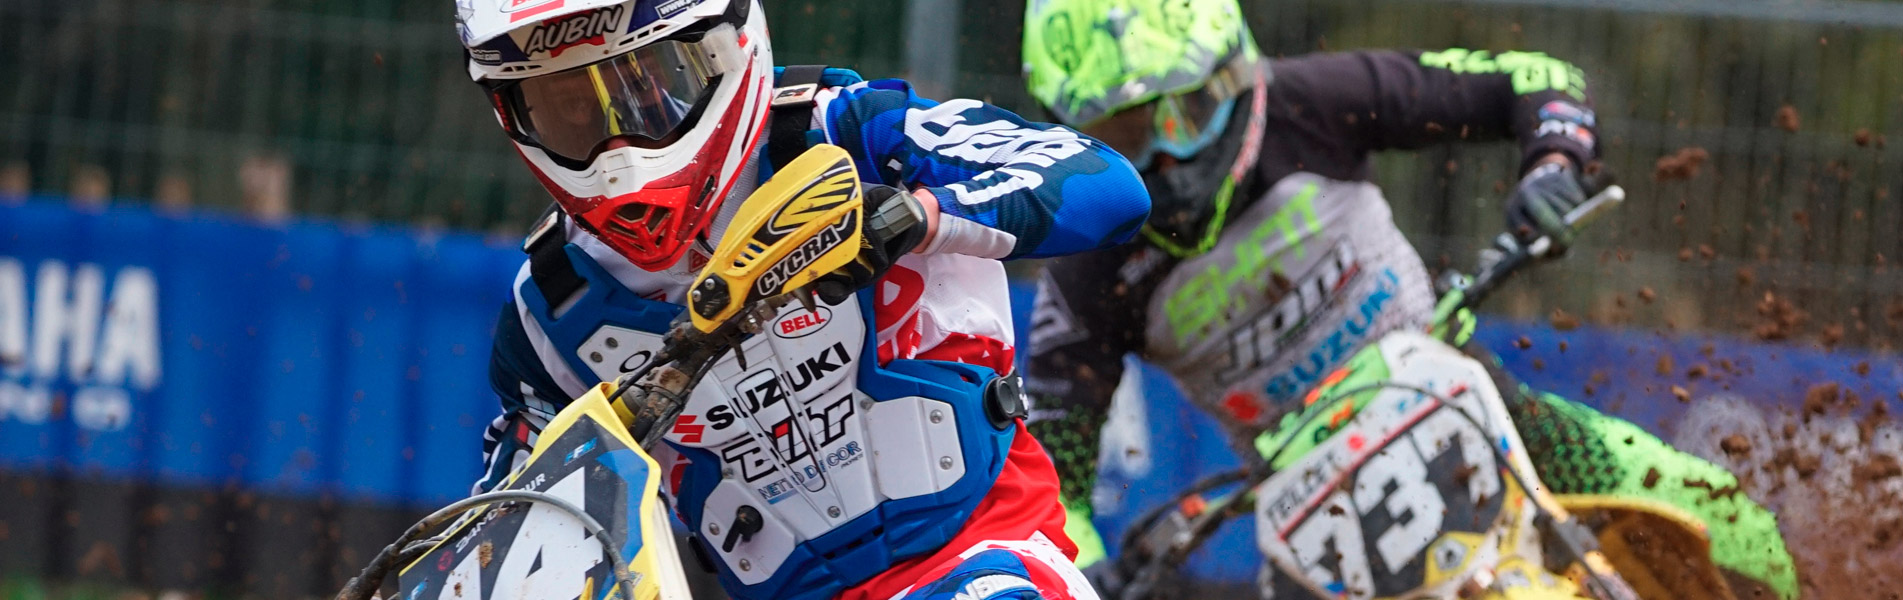 Nicolas Aubin wears the chest protector